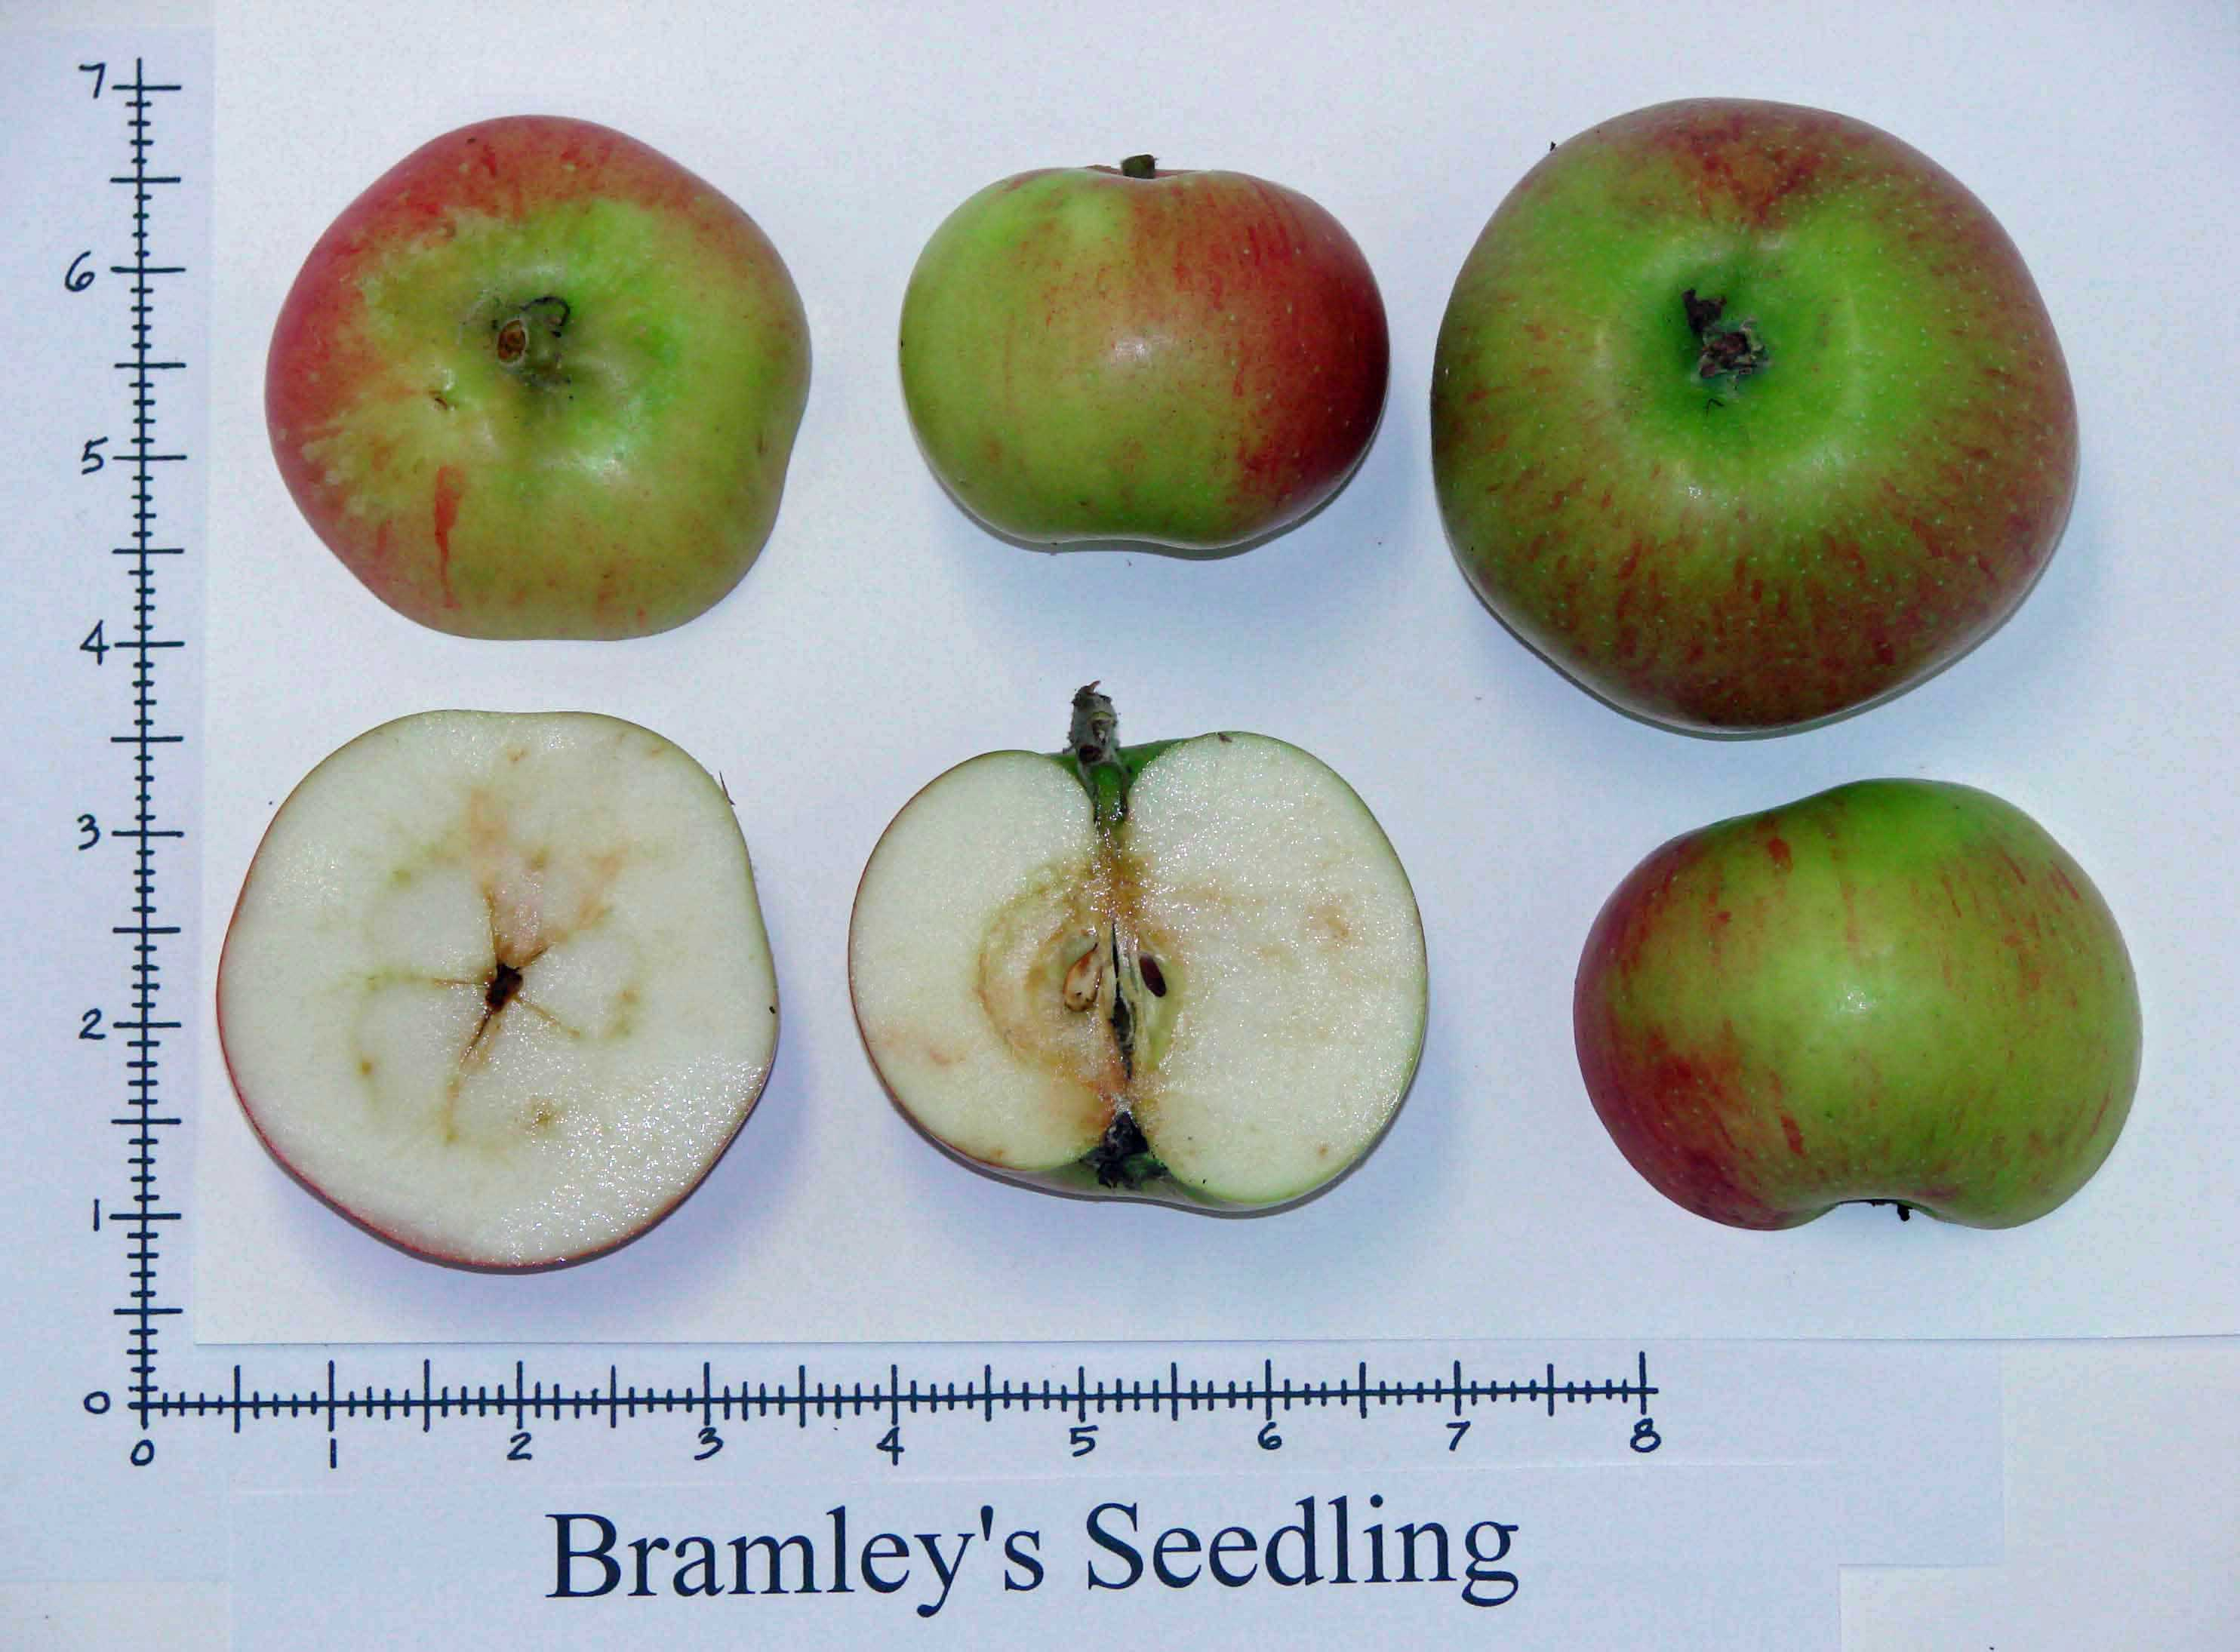 Bramleys Seedling